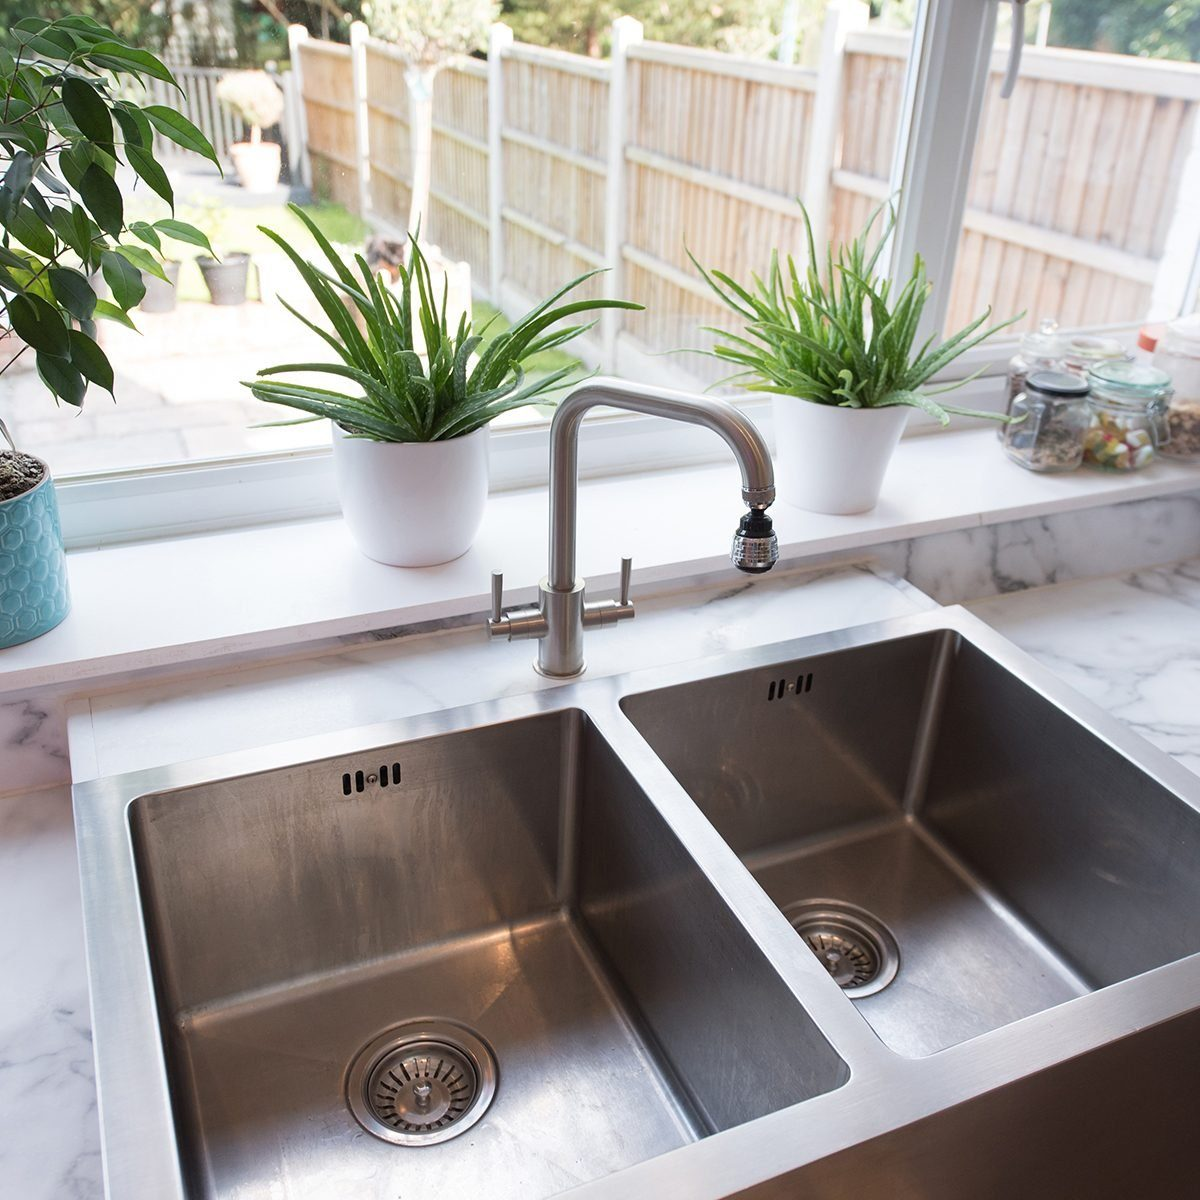 A general view of a kitchen interior with a modern stainless steel twin sinks by a window with a view into the garden